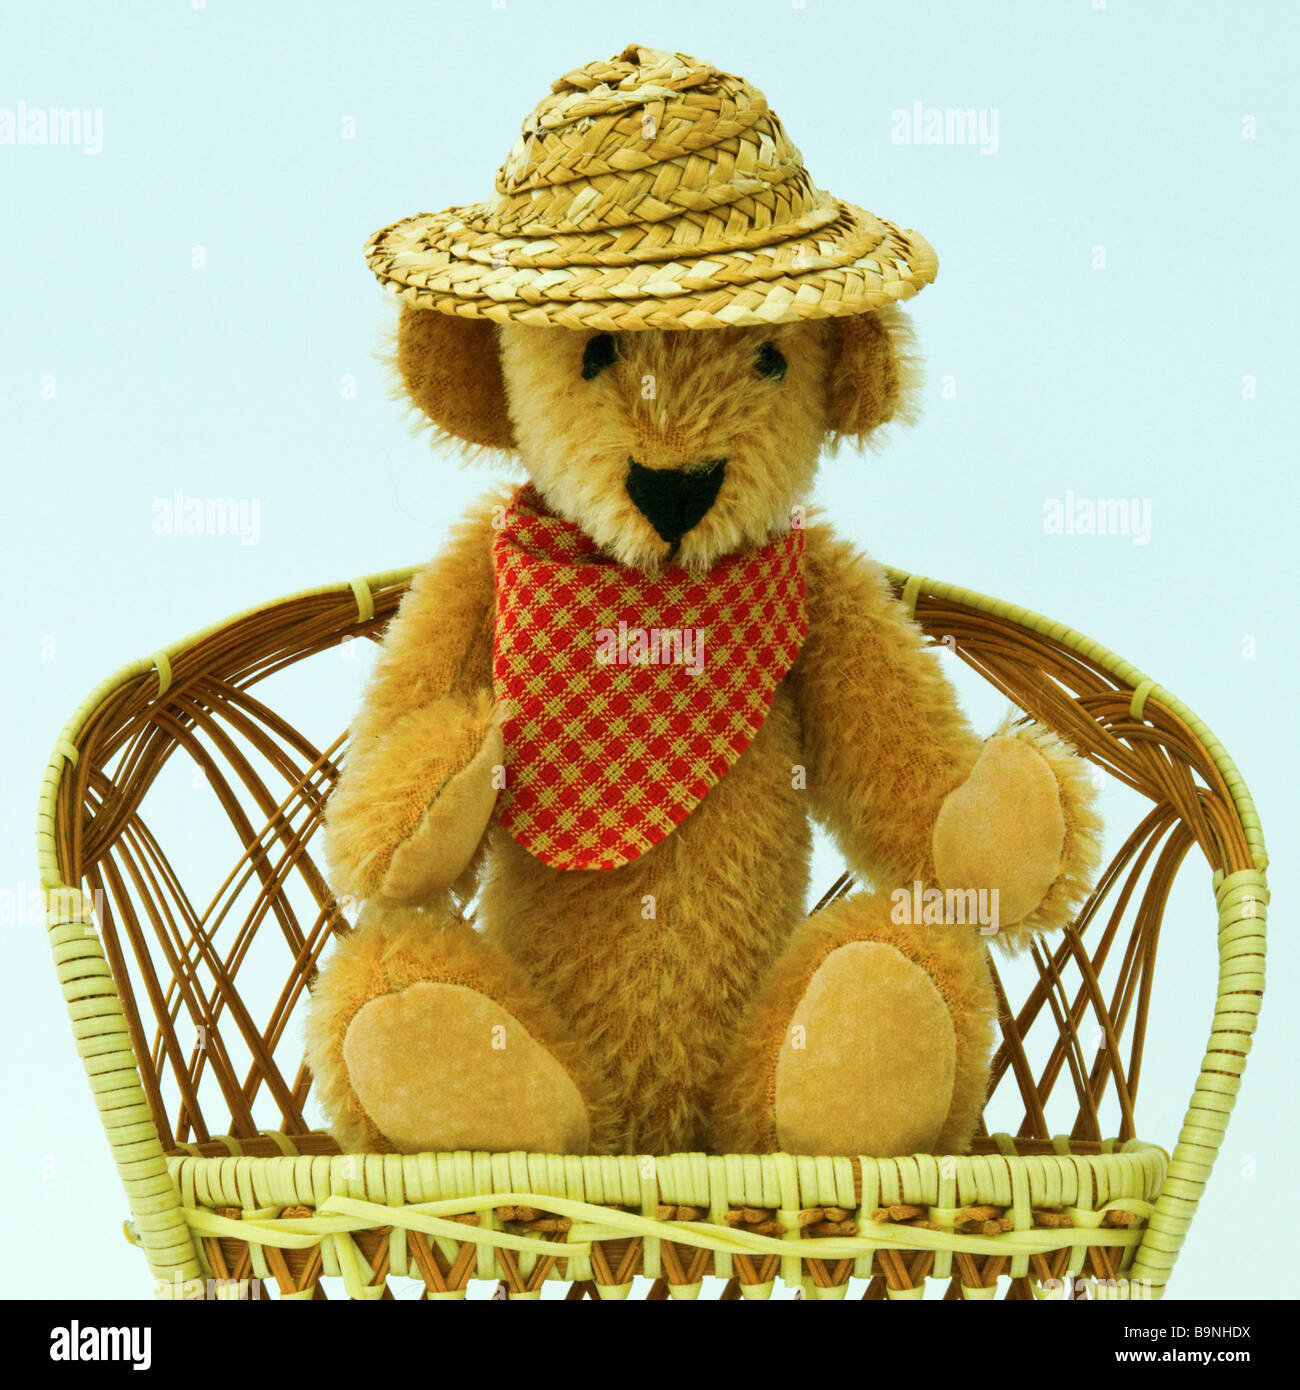 Wicker Teddy Bear Stock Photos Amp Wicker Teddy Bear Stock